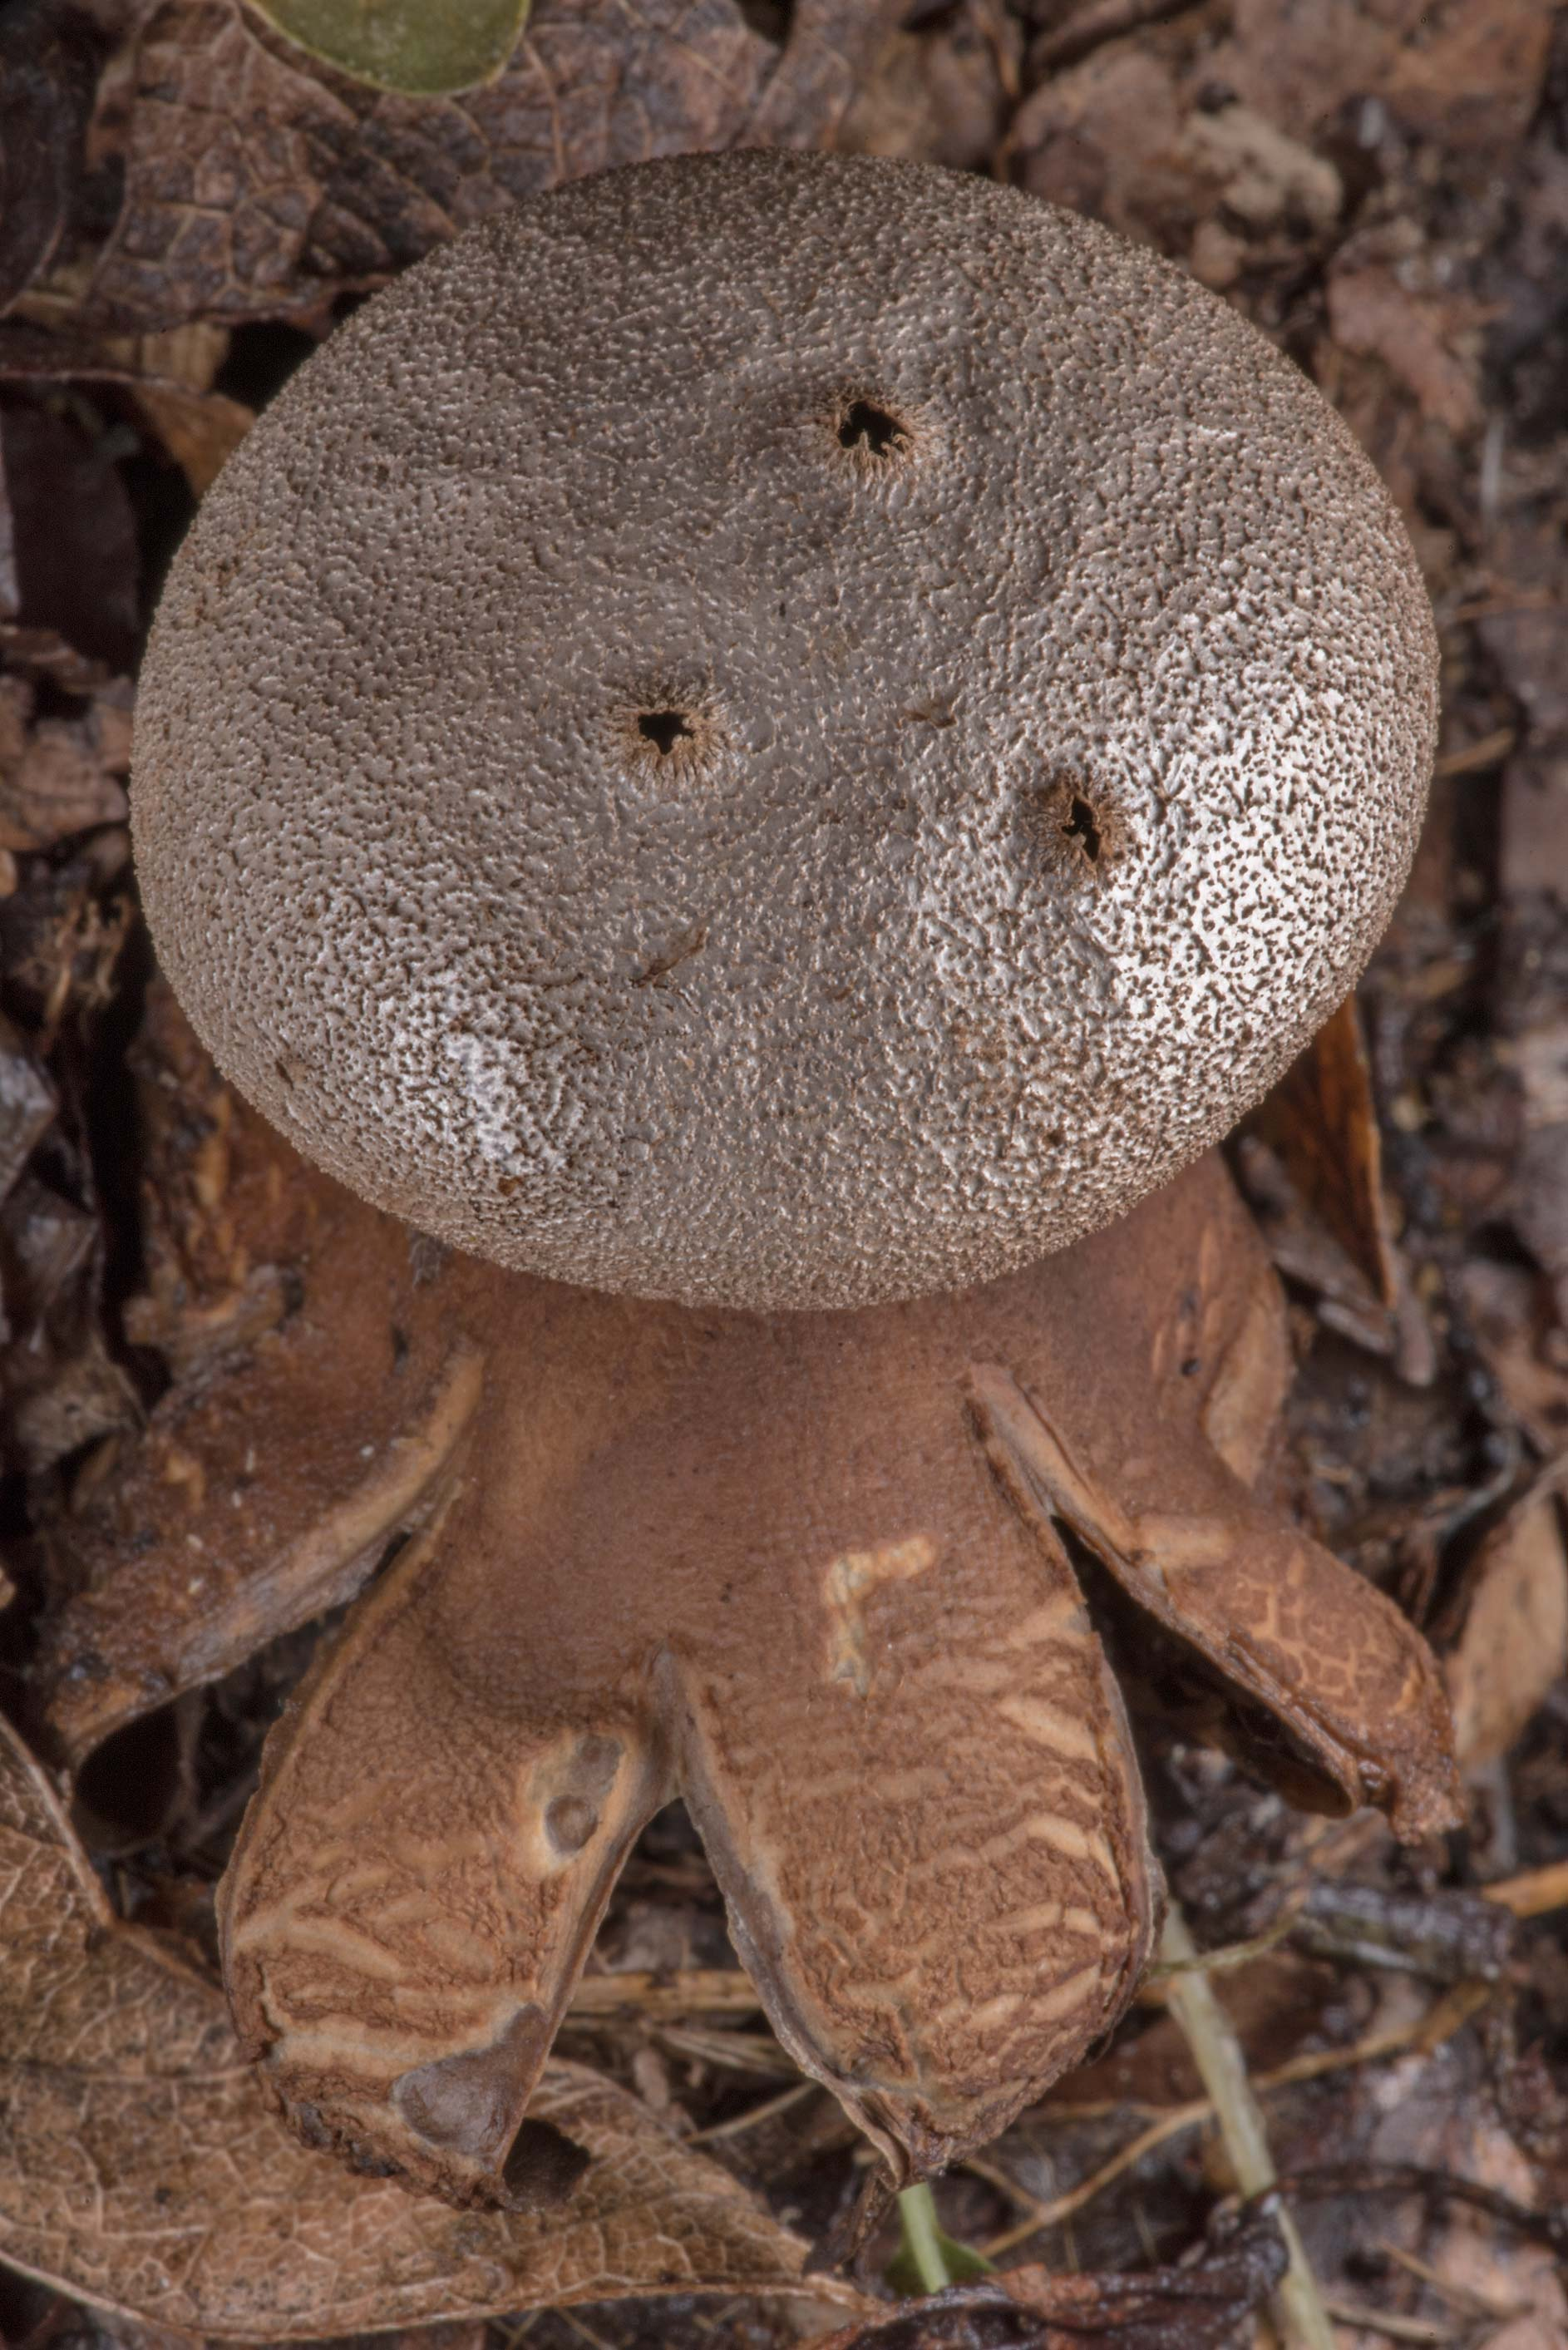 Pepper pot earthstar mushroom (Myriostoma...State Historic Site. Washington, Texas